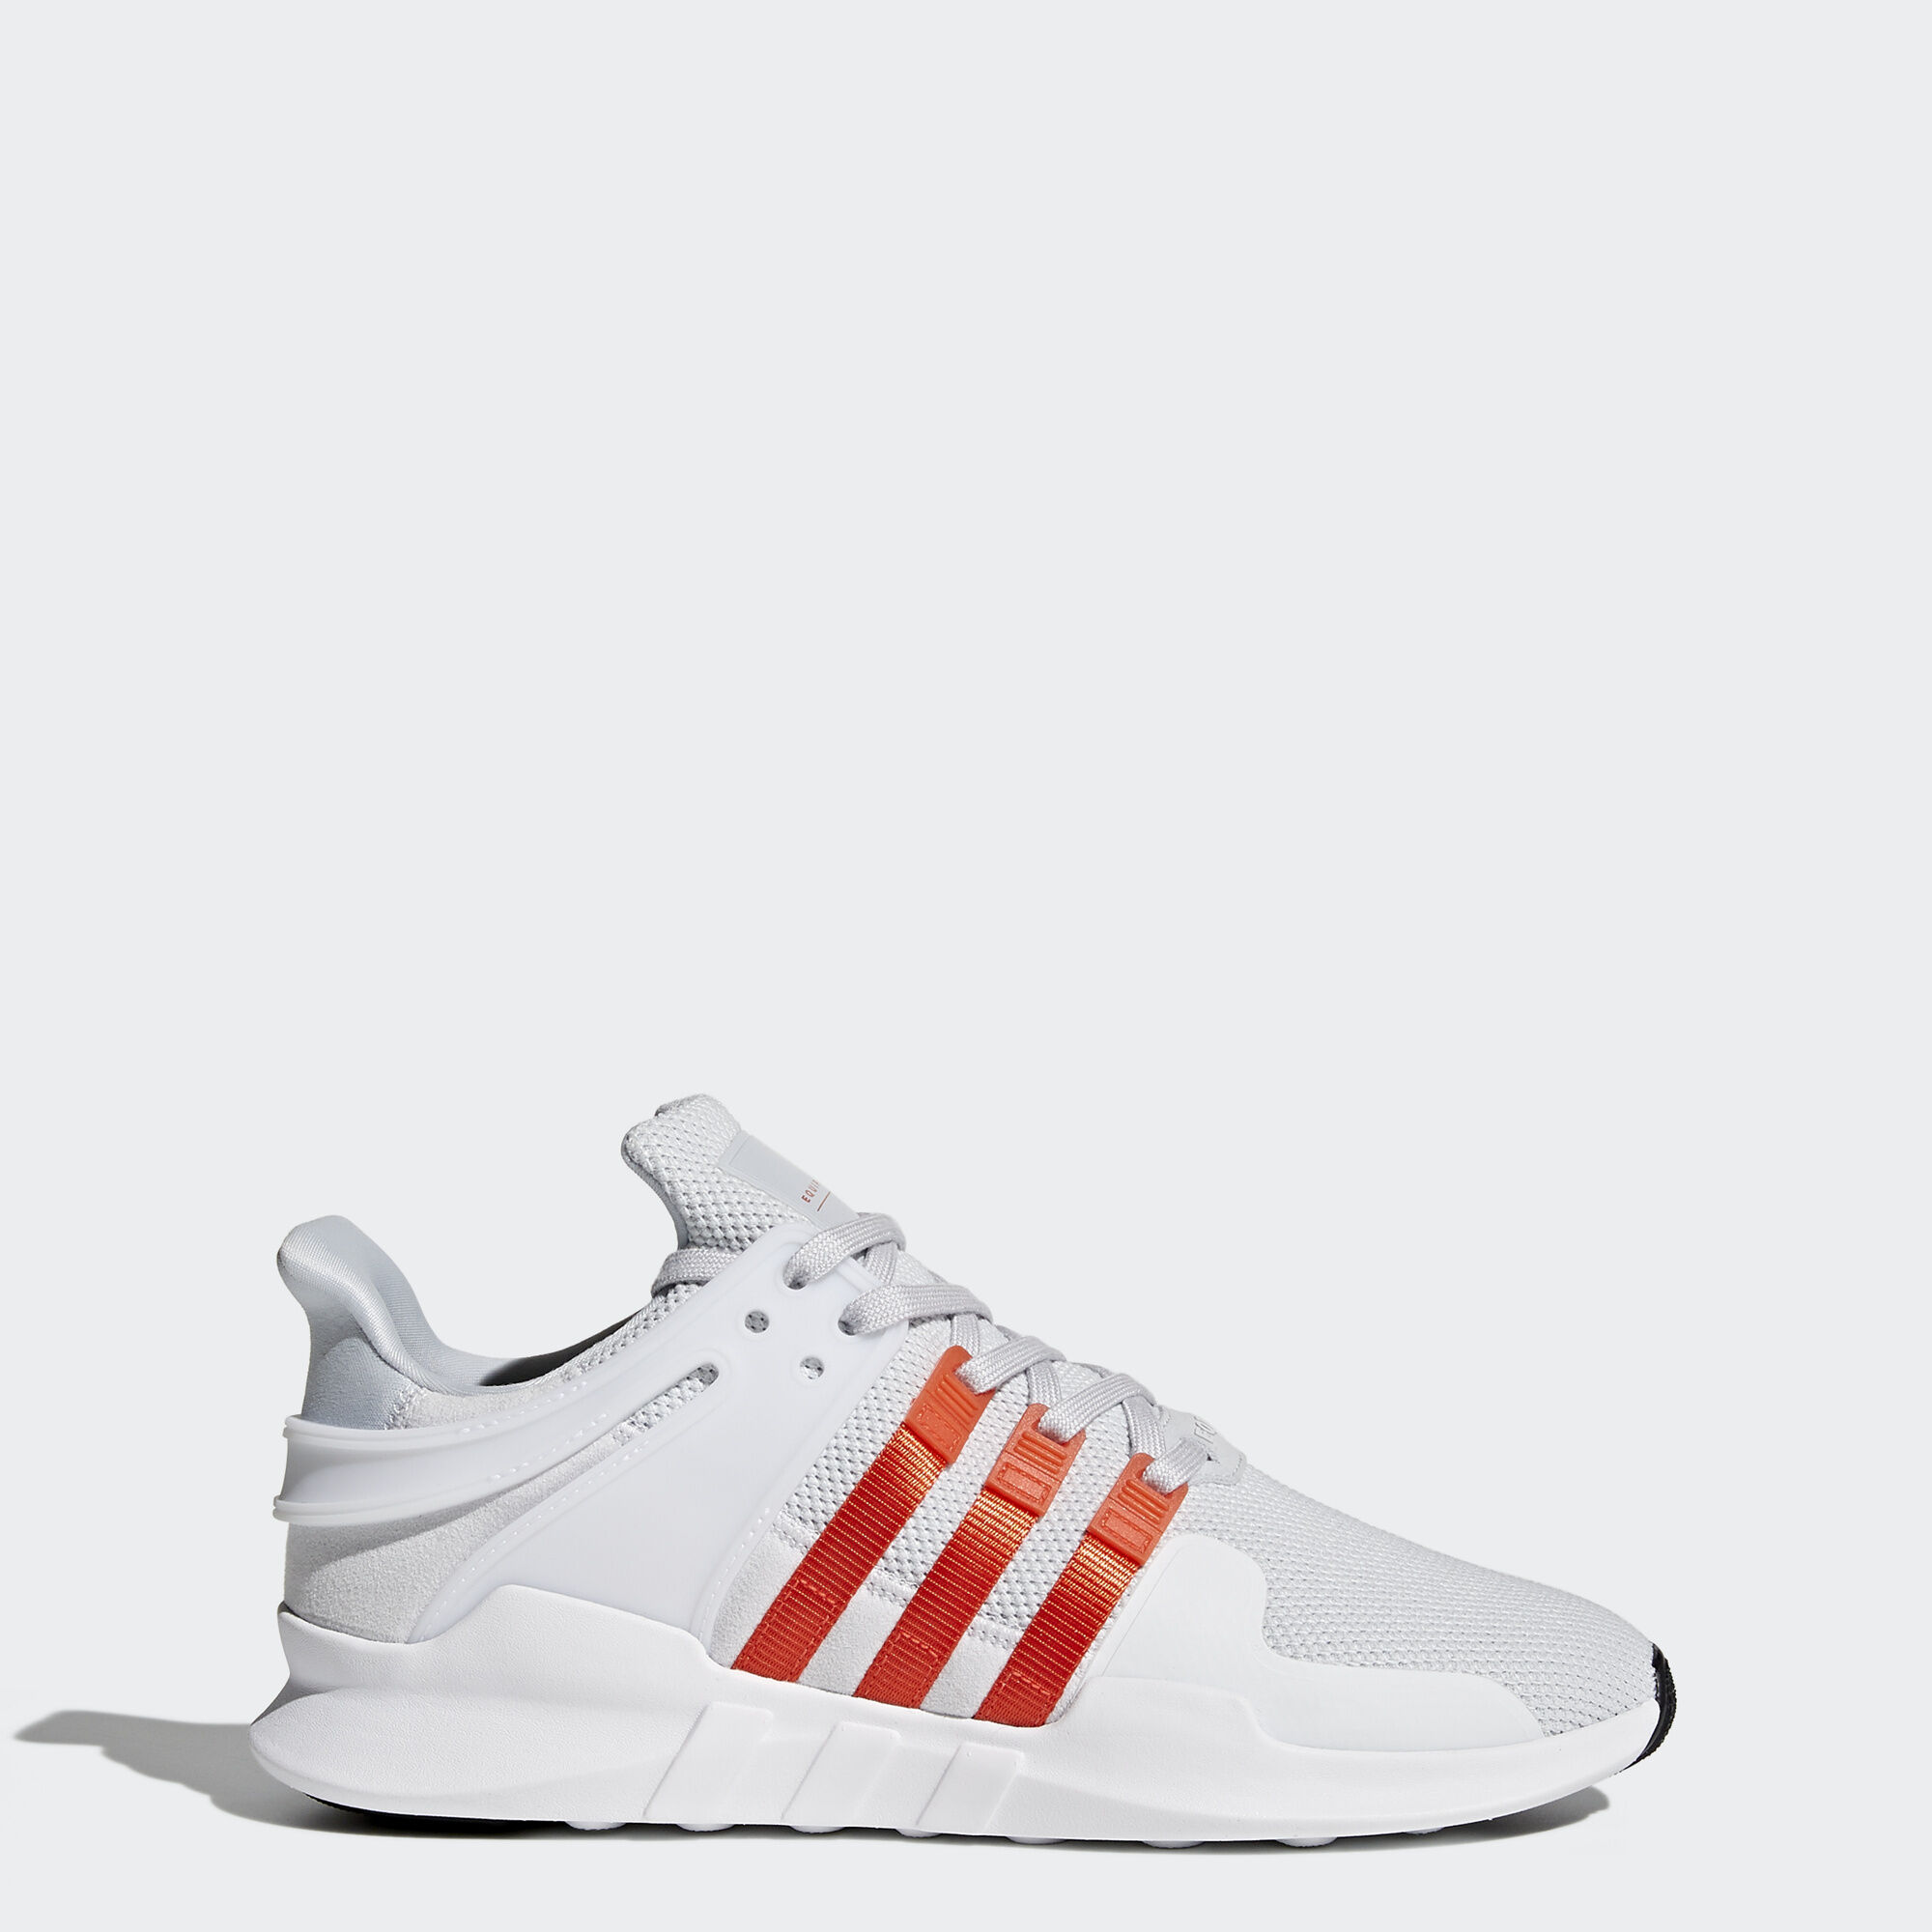 a7778d40b3ec adidas EQT Support ADV Shoes White adidas New adidas NZ